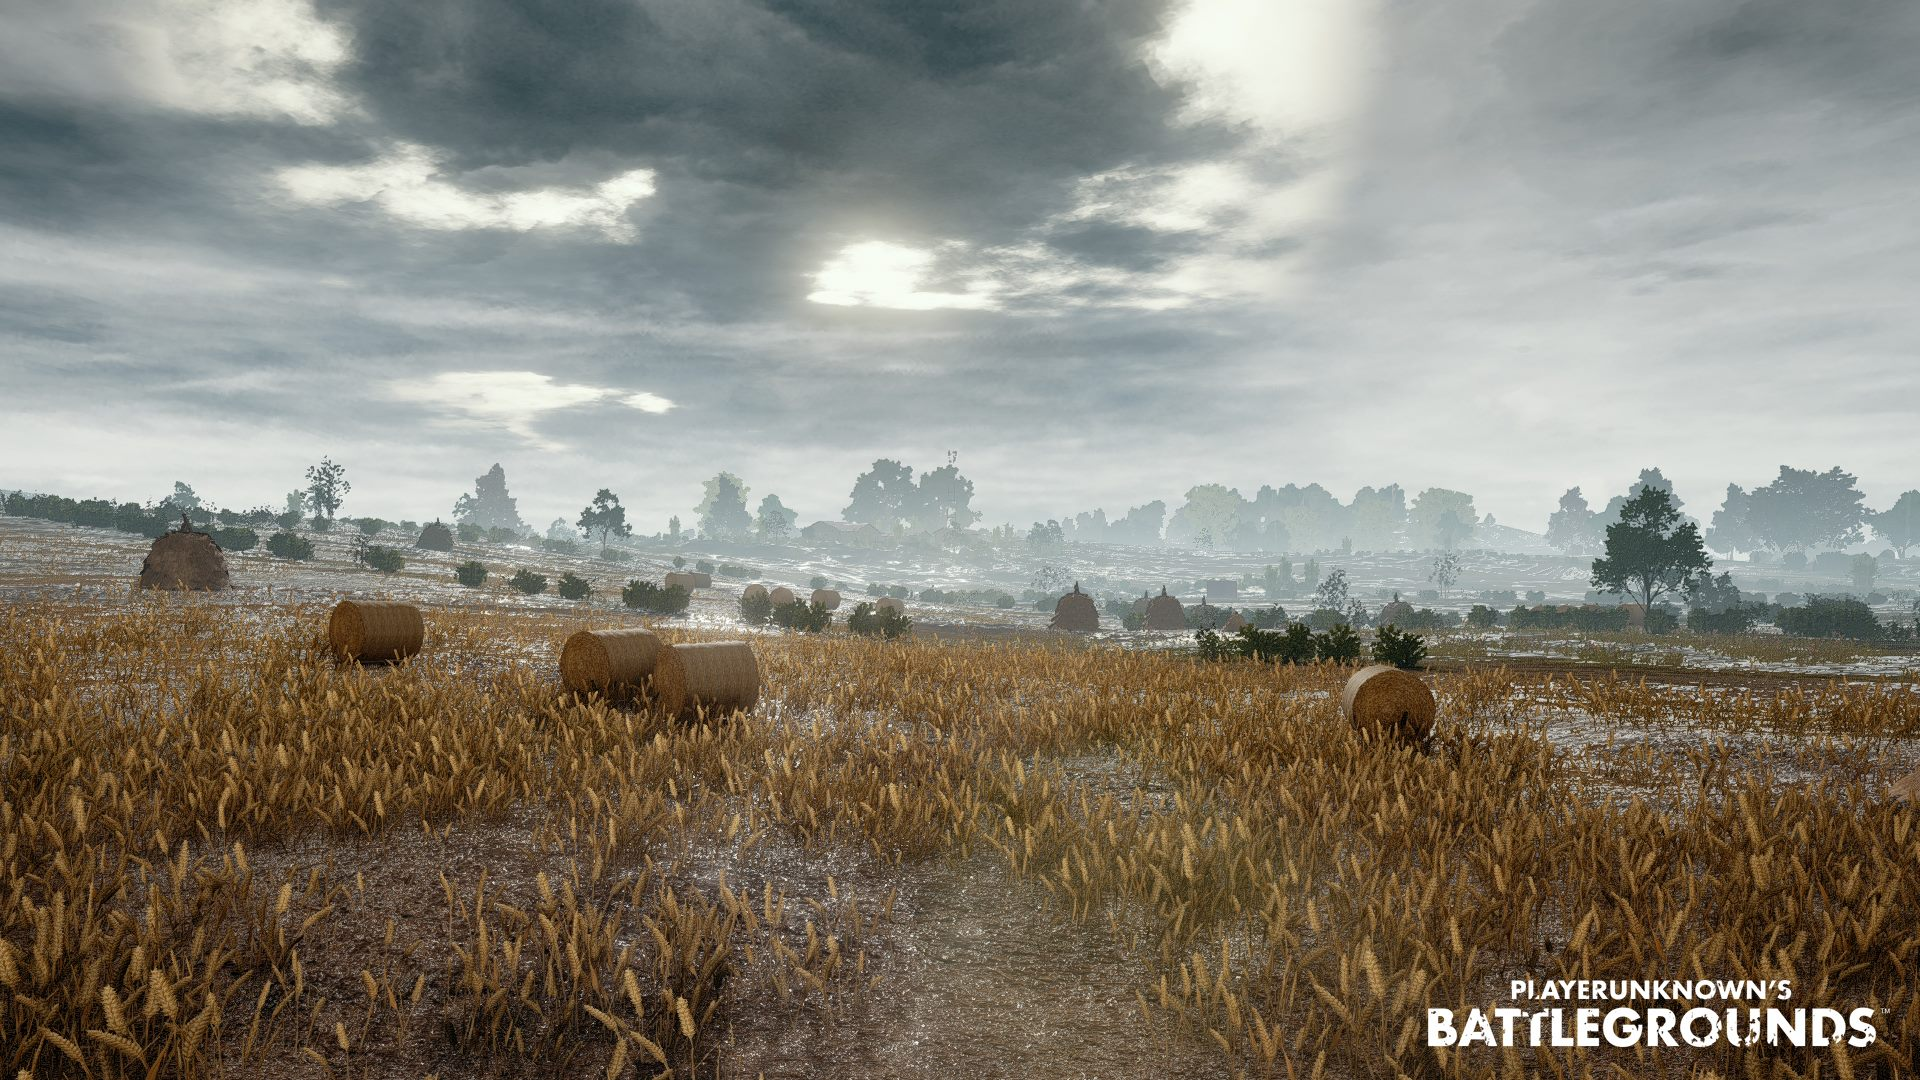 Pubg Wallpaper 1920x1080: PLAYERUNKNOWN'S BATTLEGROUNDS Backgrounds, Pictures, Images